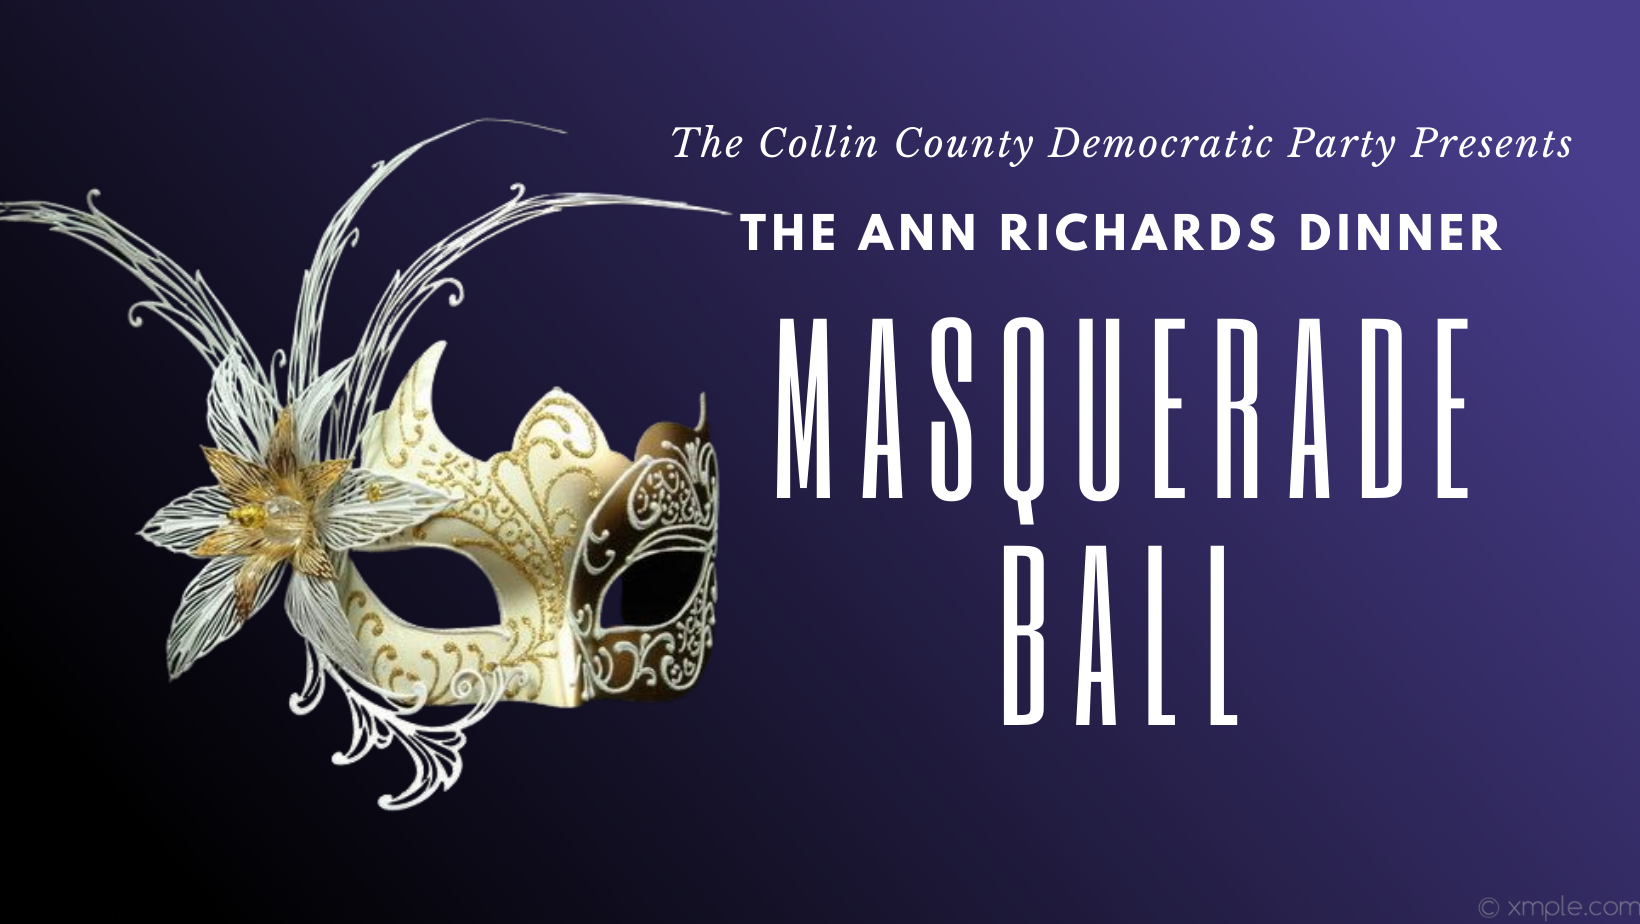 Fancy Mask next to text The Collin County Democratic Party Presents The Ann Richards Masquerade Ball